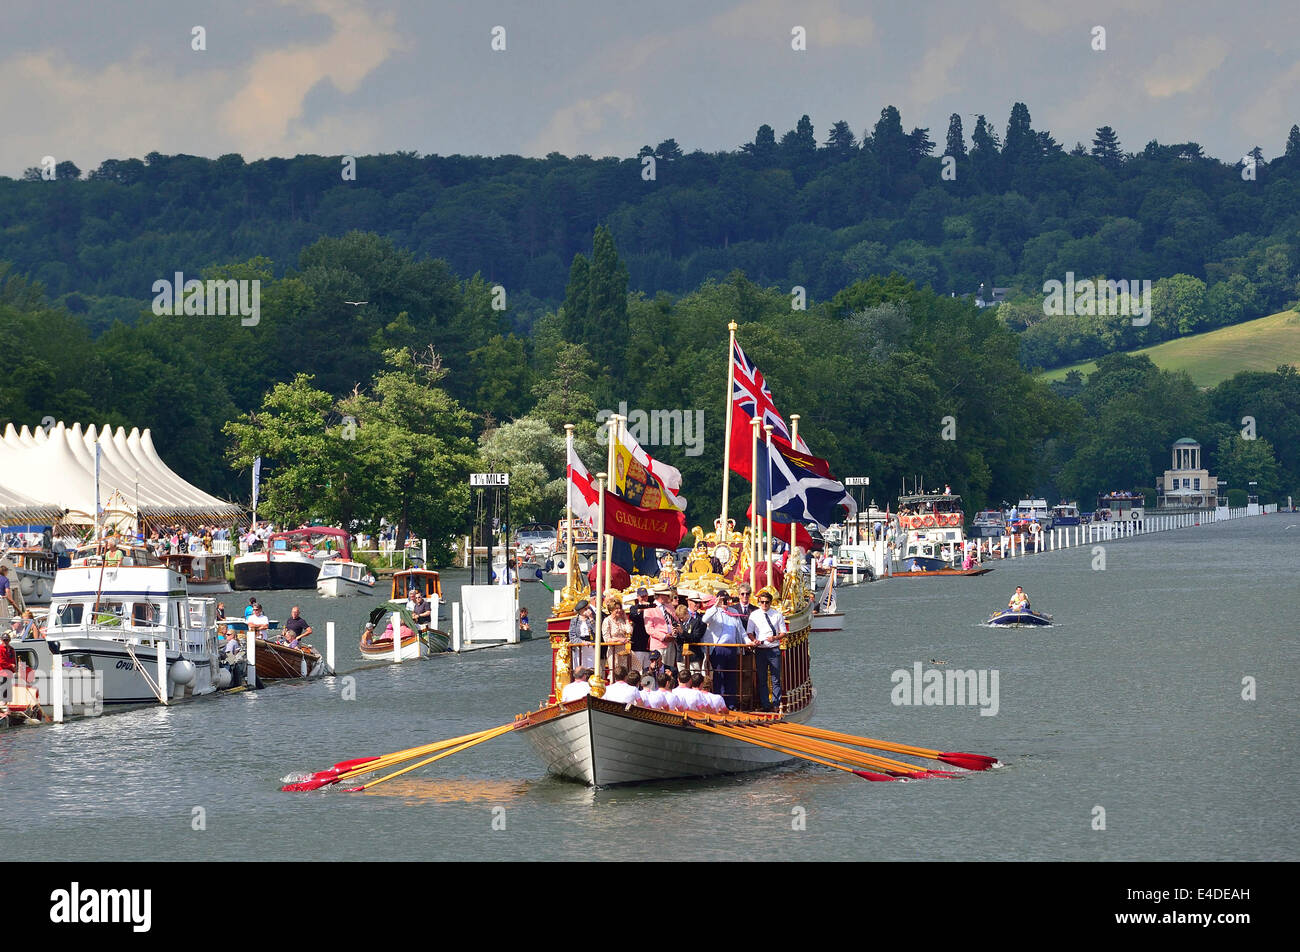 Gloriana, the rowing barge built for the Queen's Diamond Jubilee, n a row past during175th anniversary of Henley - Stock Image